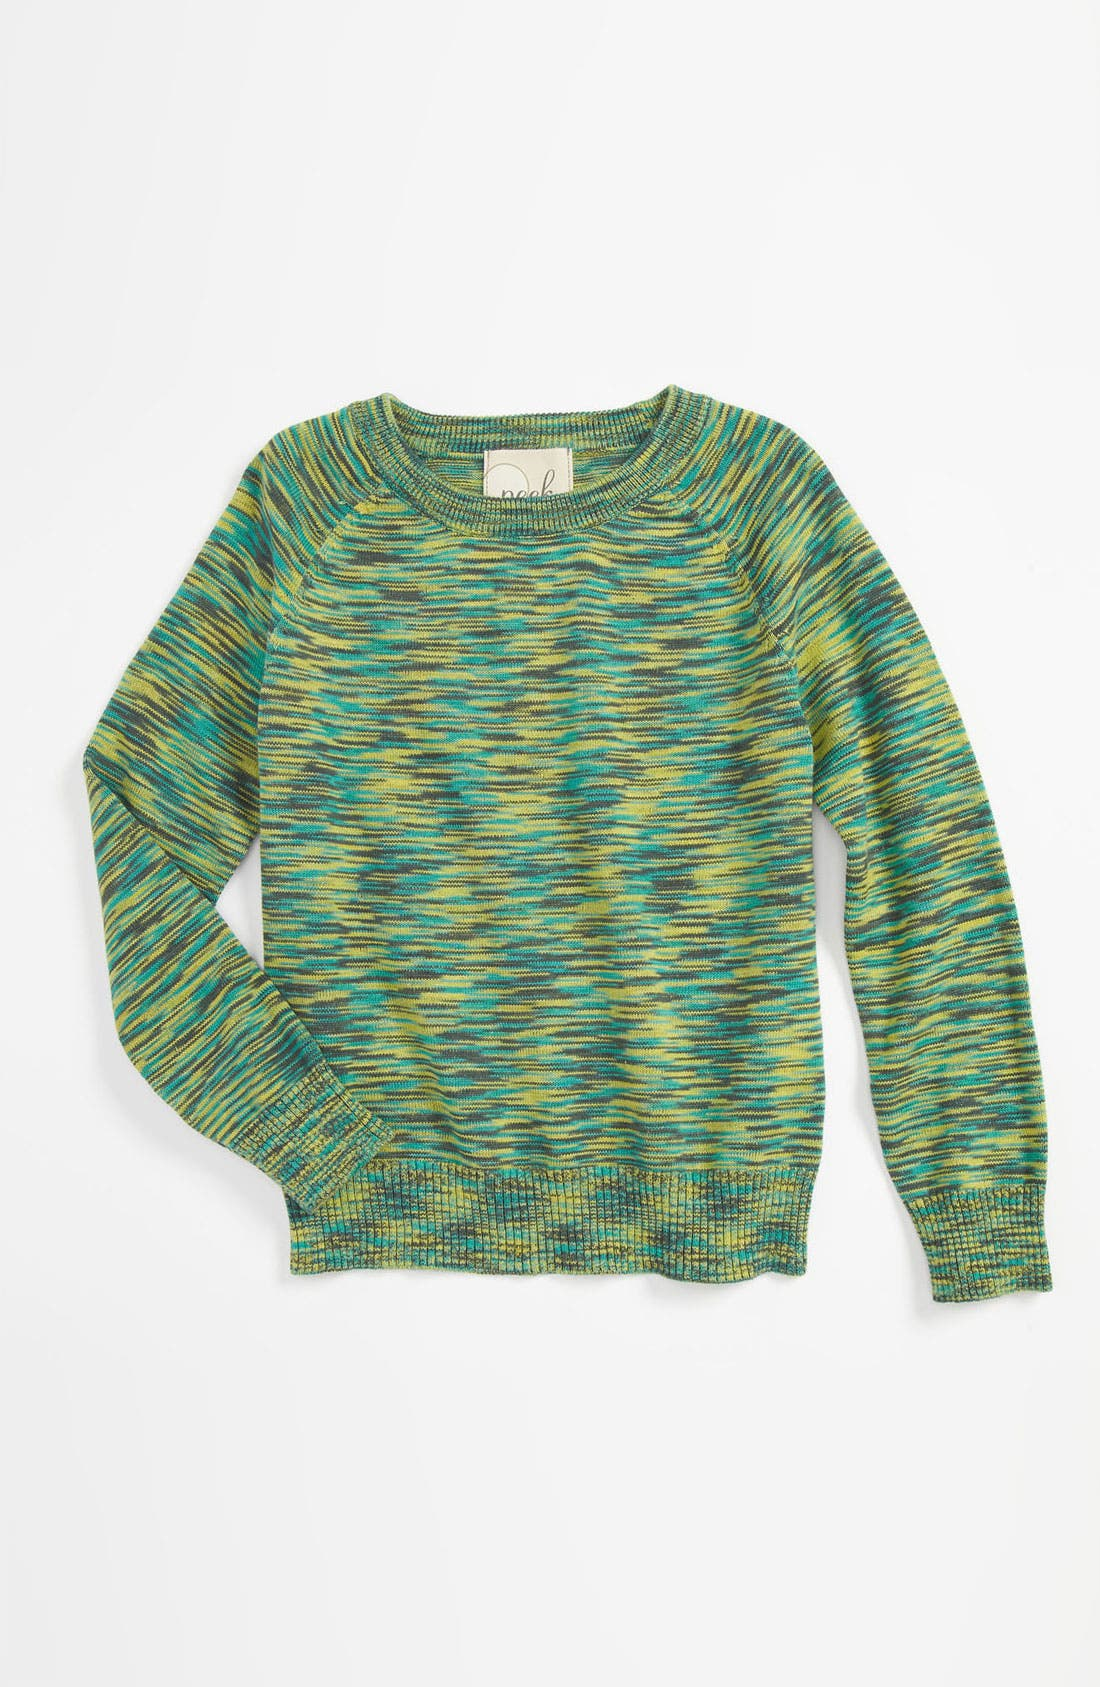 Main Image - Peek 'Susana' Crewneck Sweater (Toddler, Little Girls & Big Girls)